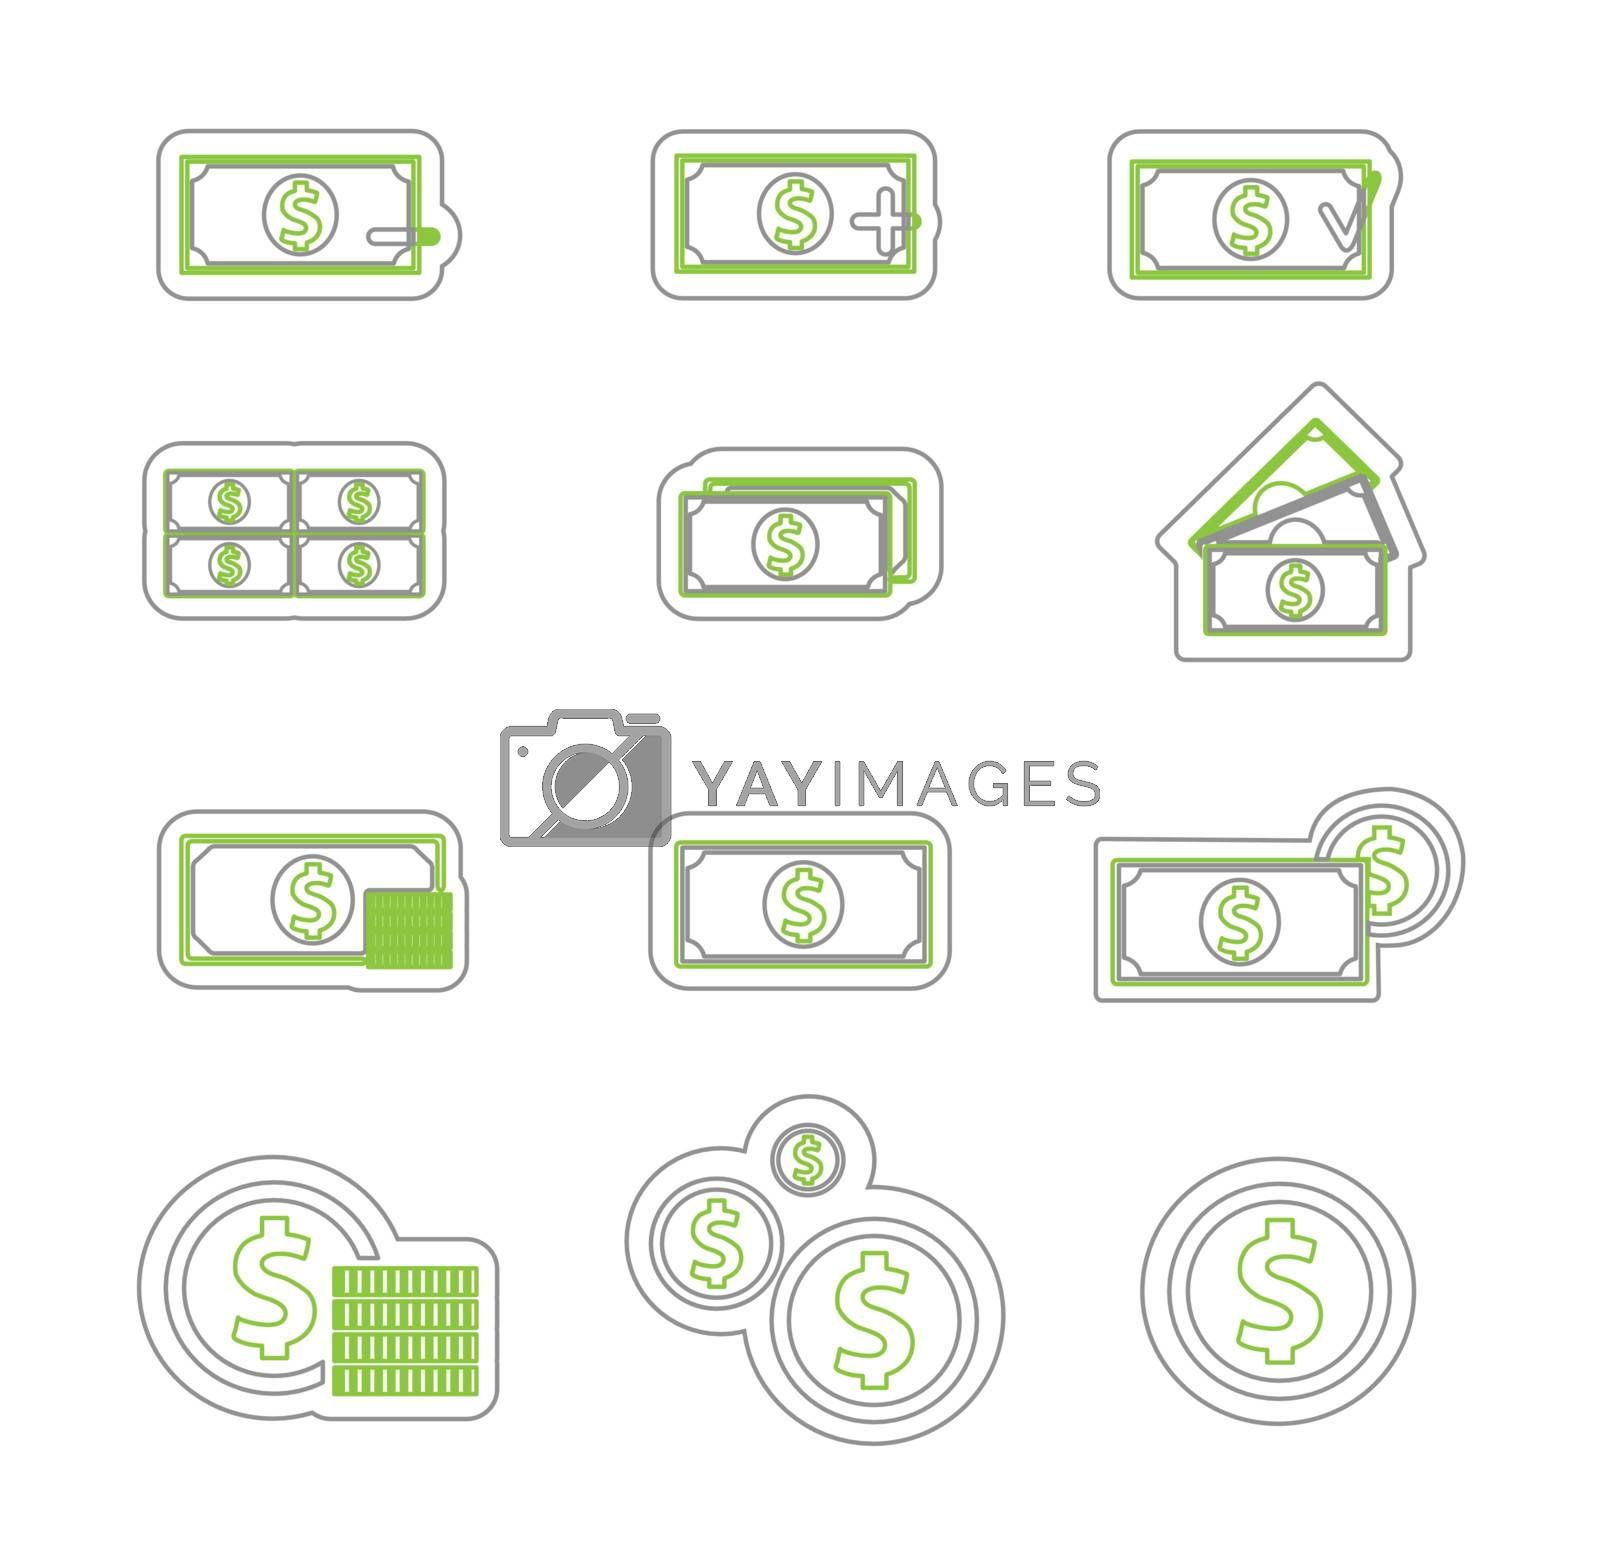 Money icon duoton by smoki